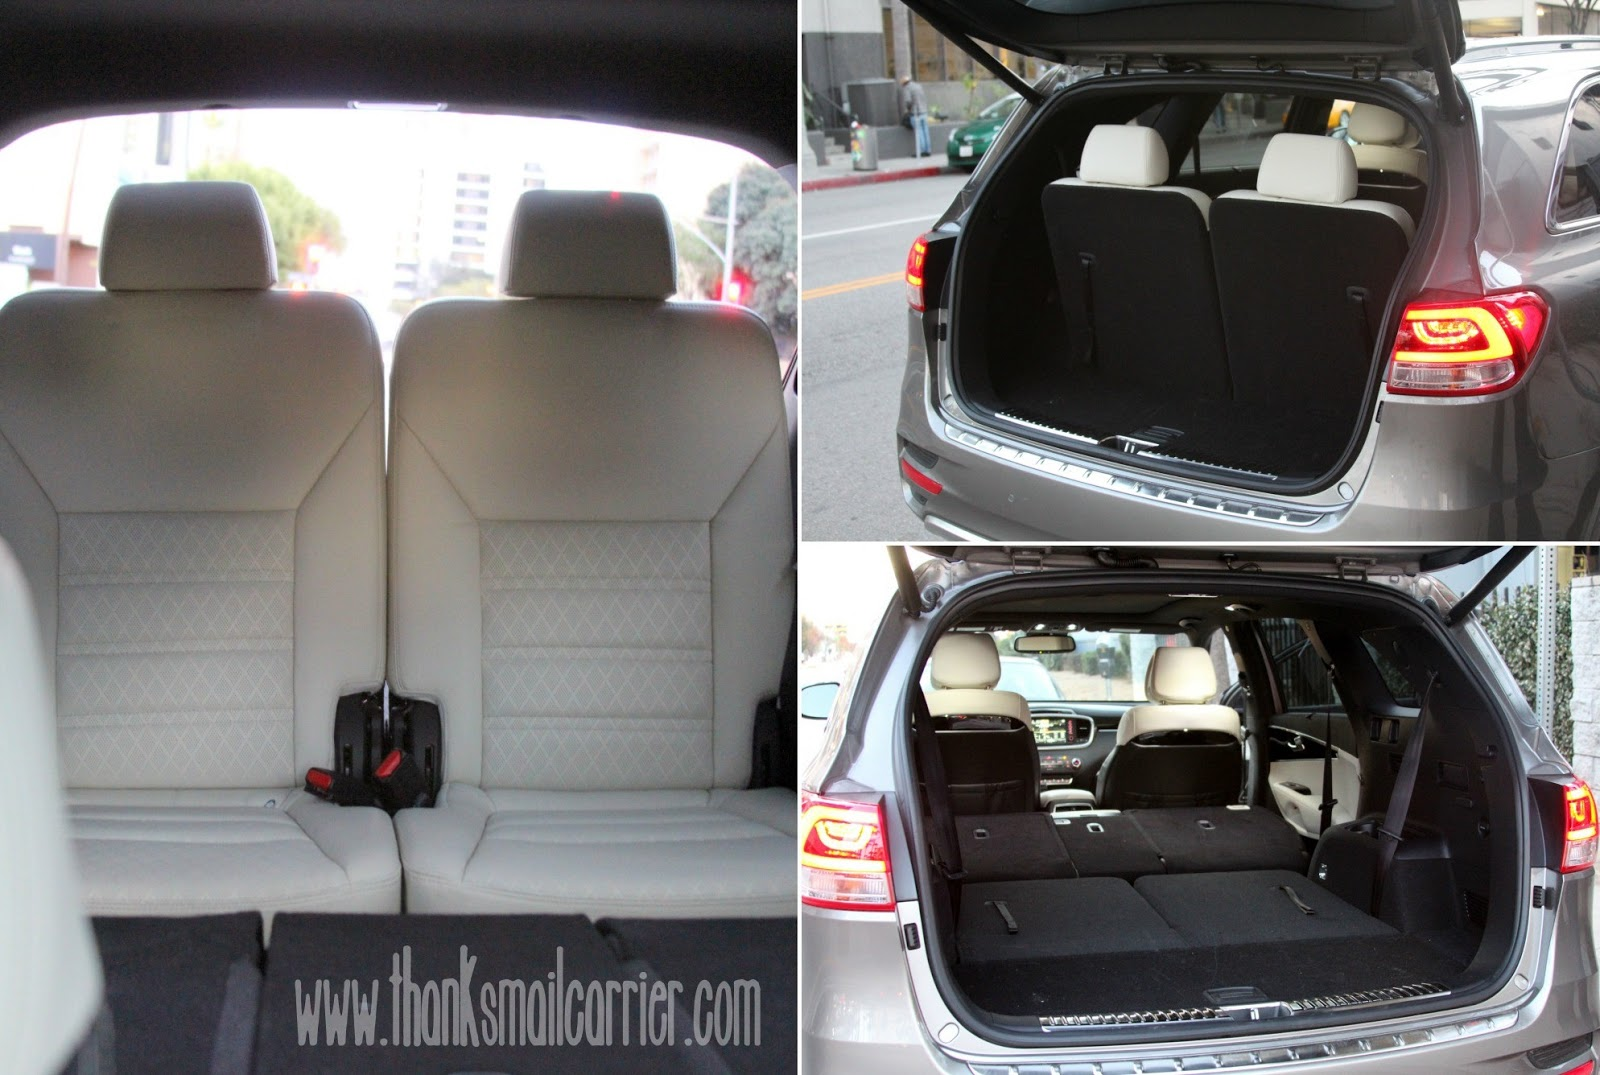 Kia Sorento third row